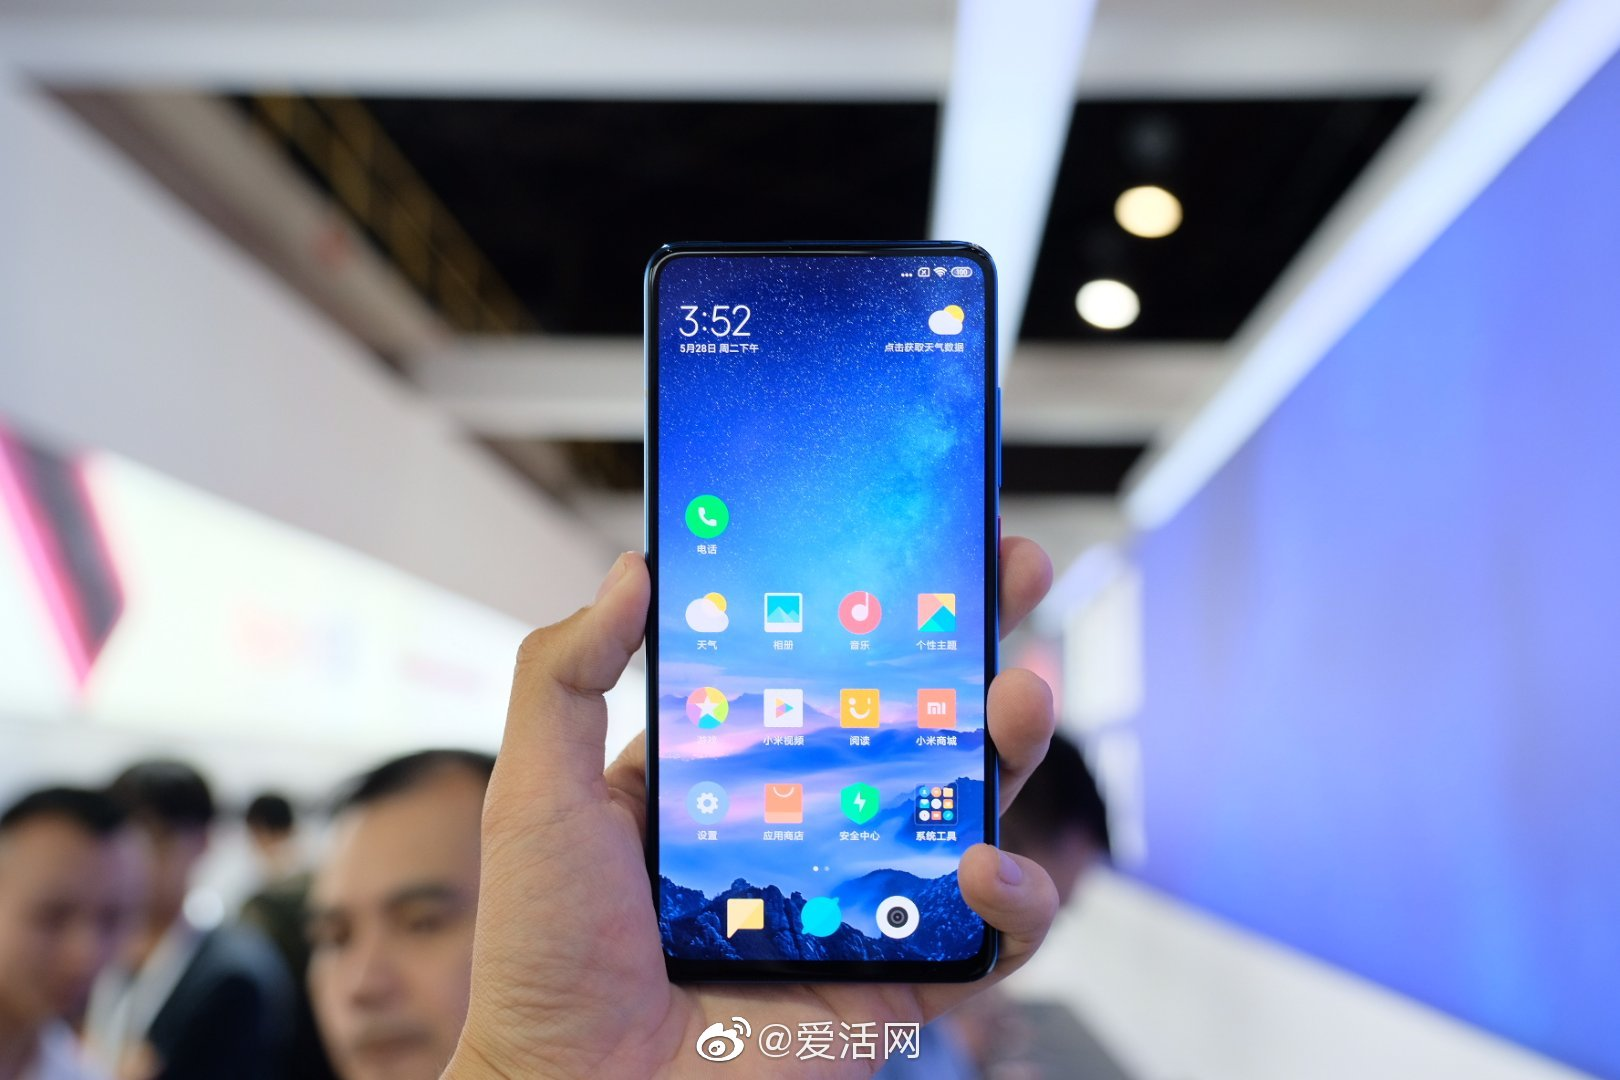 Redmi K20 & K20 Pro are official, price starts at 1,999 Yuan